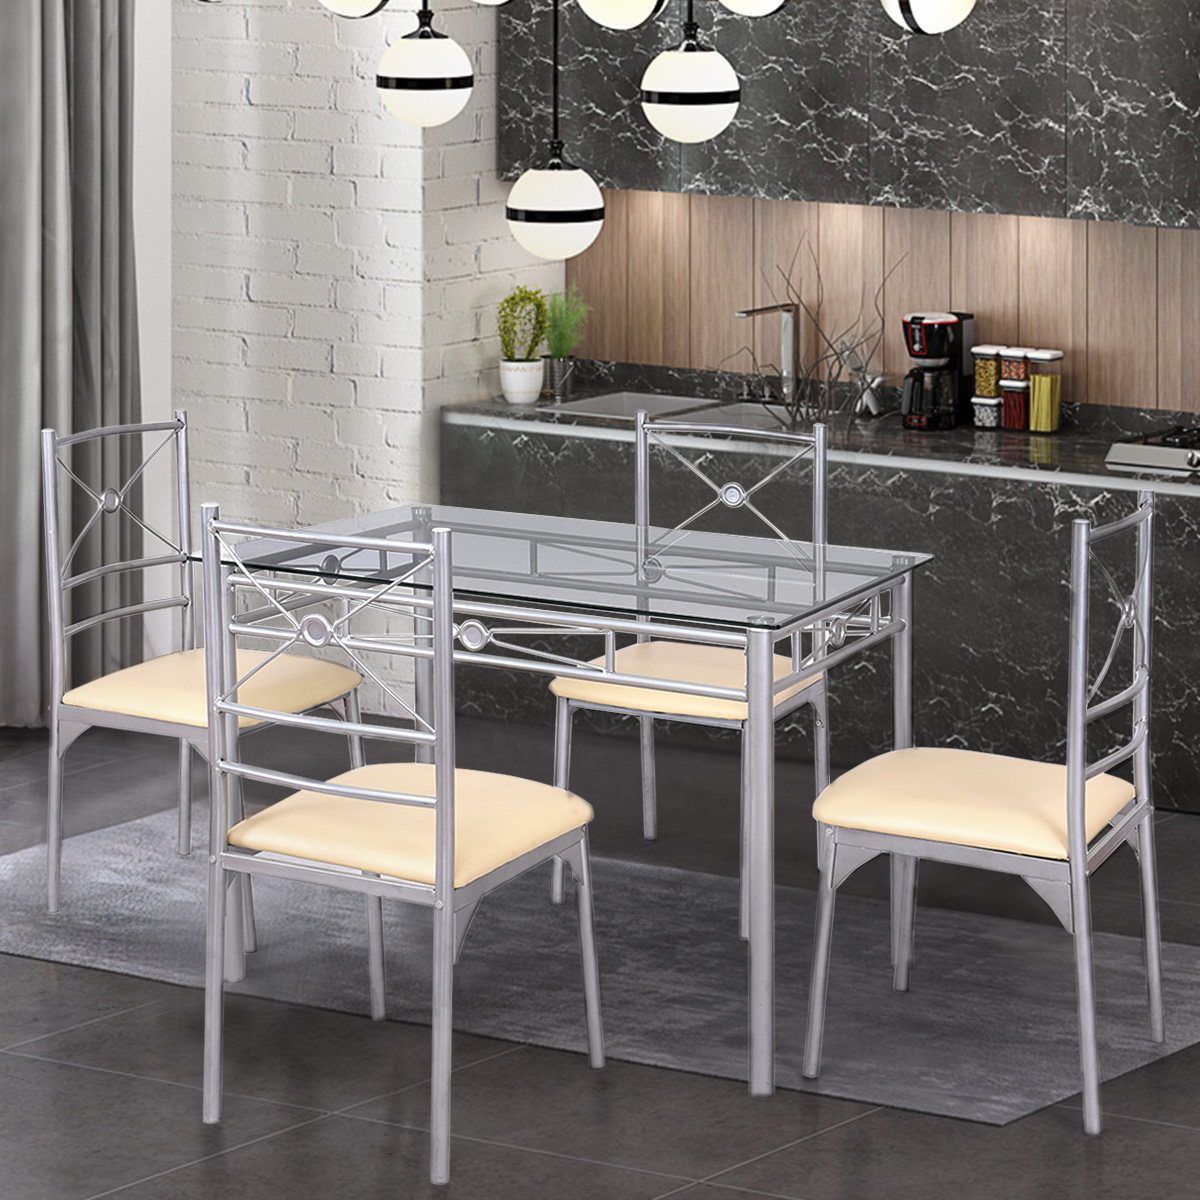 Gymax Dining Set 5 Piece Table Chairs Tempered Glass Kitchen Dining Room Furniture